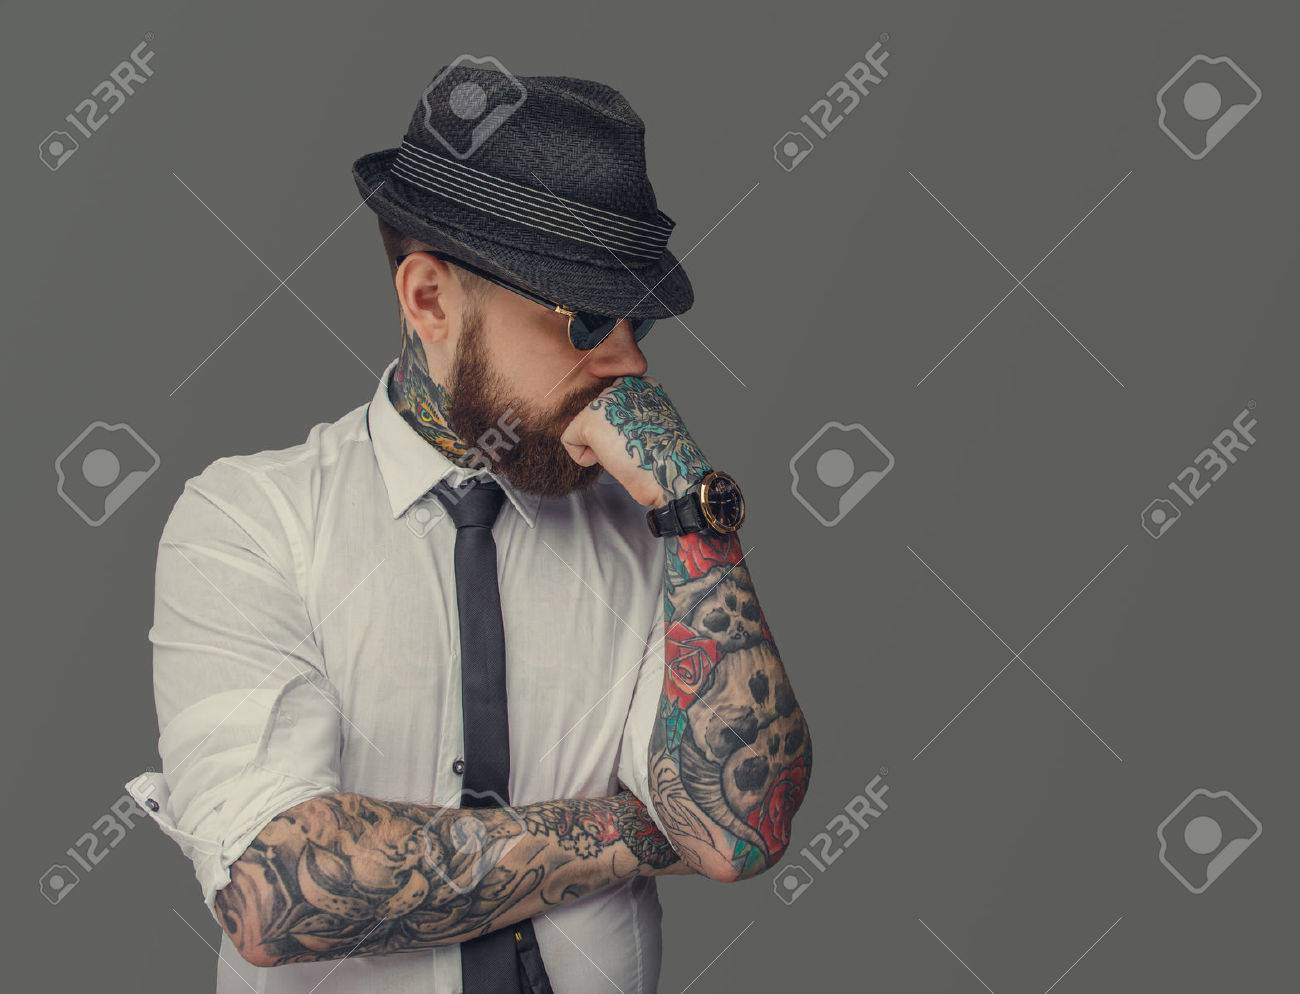 Man with tattooed arms thinking. Isolated on grey background. - 52473110